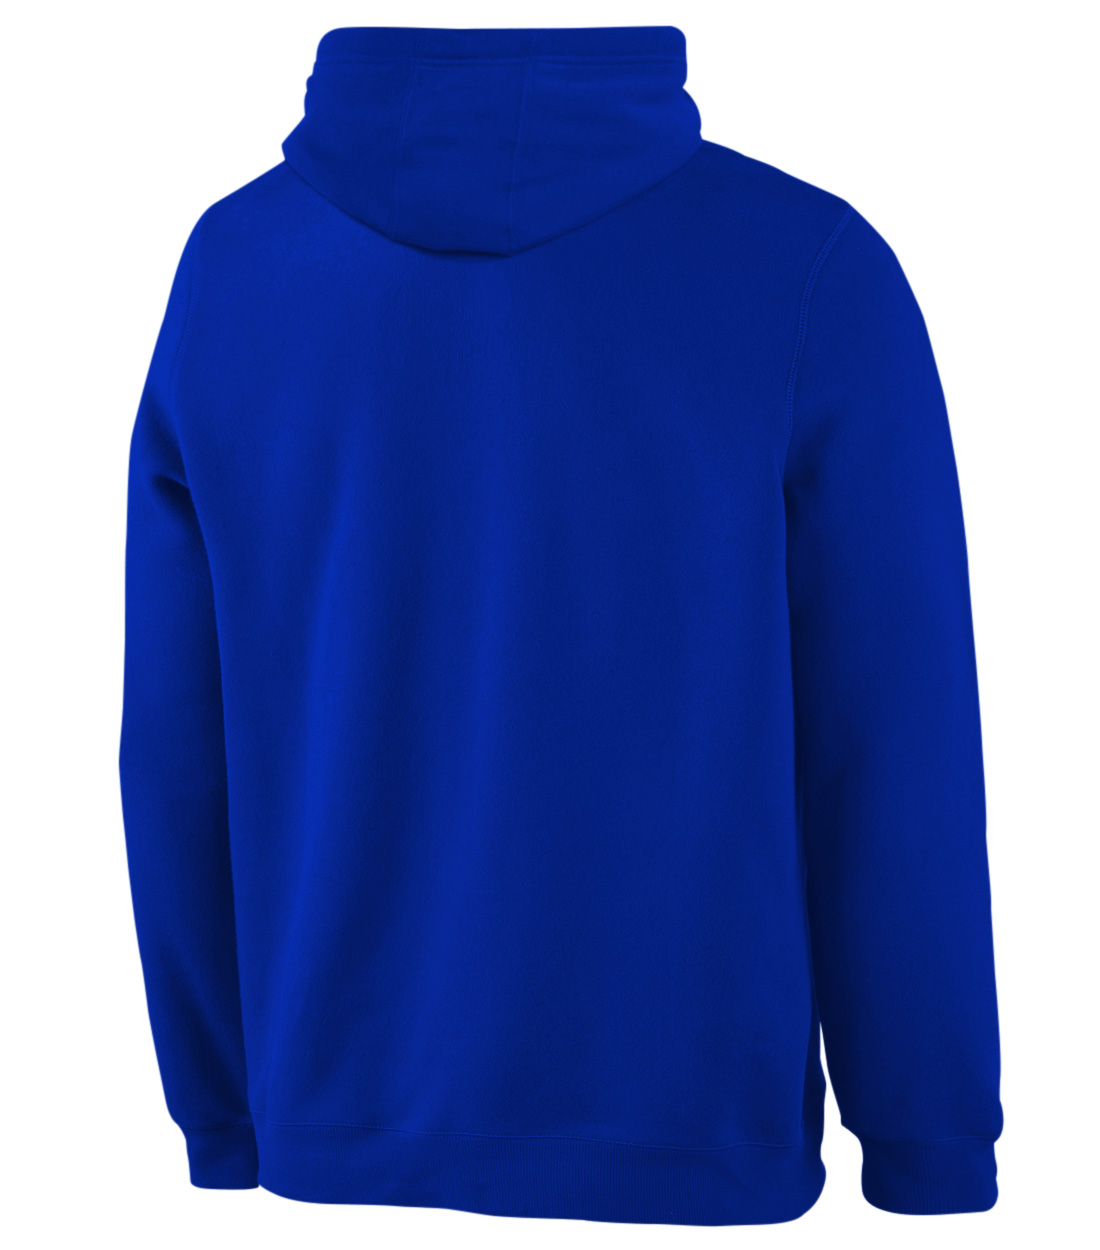 Air Jordan Flight Club Hoodie (HD-blue-6-PLYR-JRDN-FLGHT-BYZ)